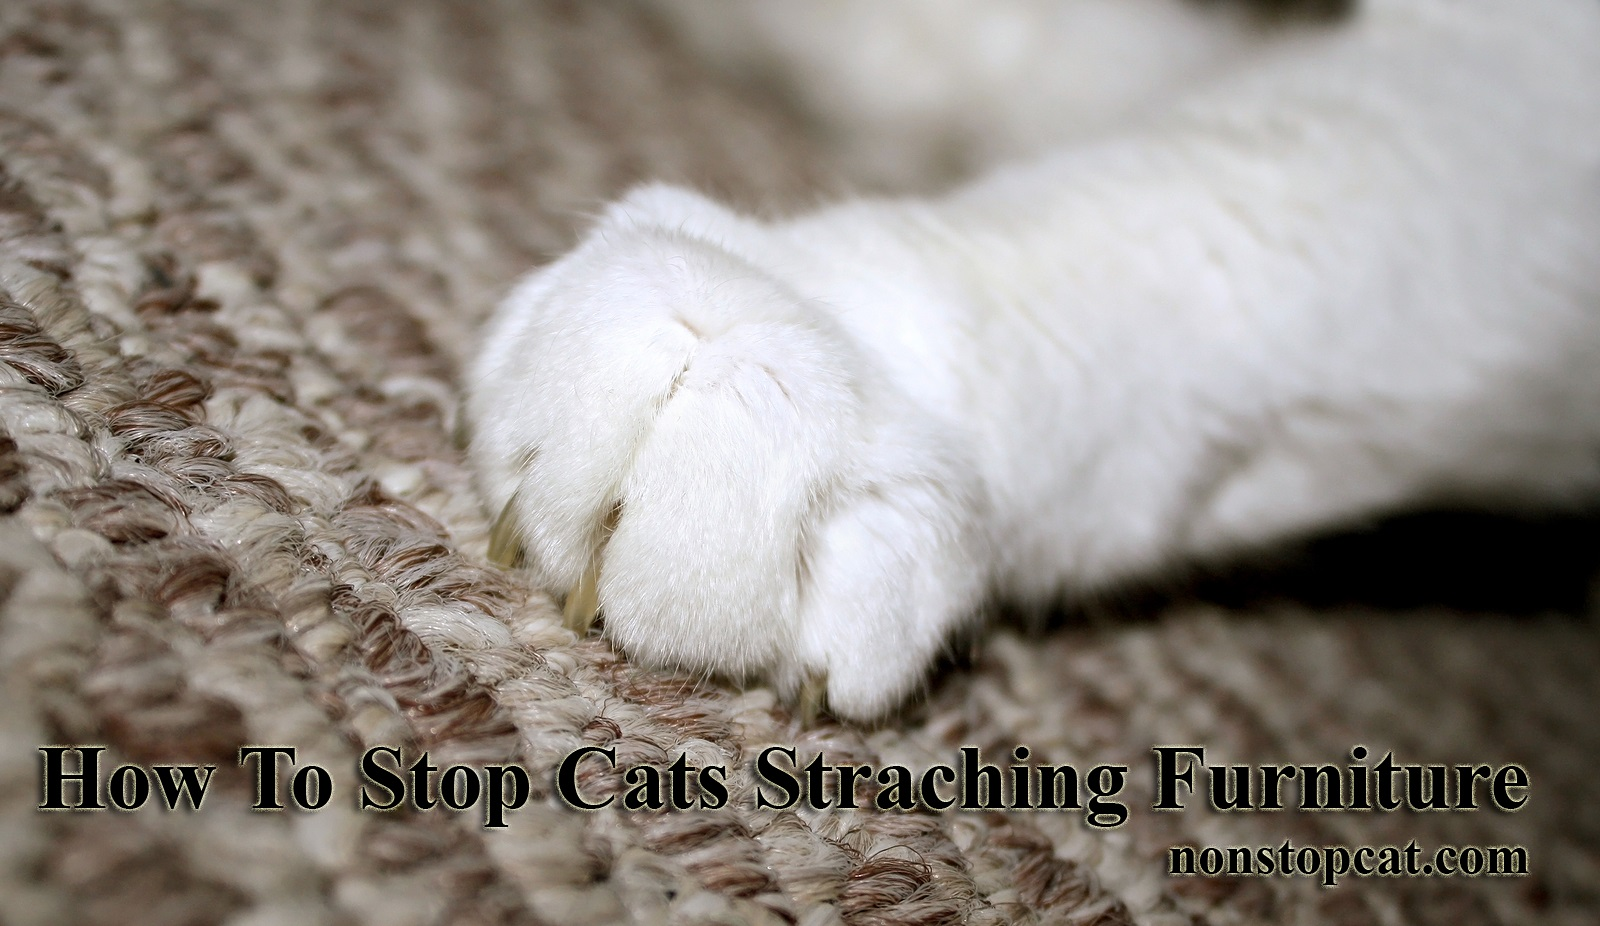 How To Stop Cats Straching Furniture